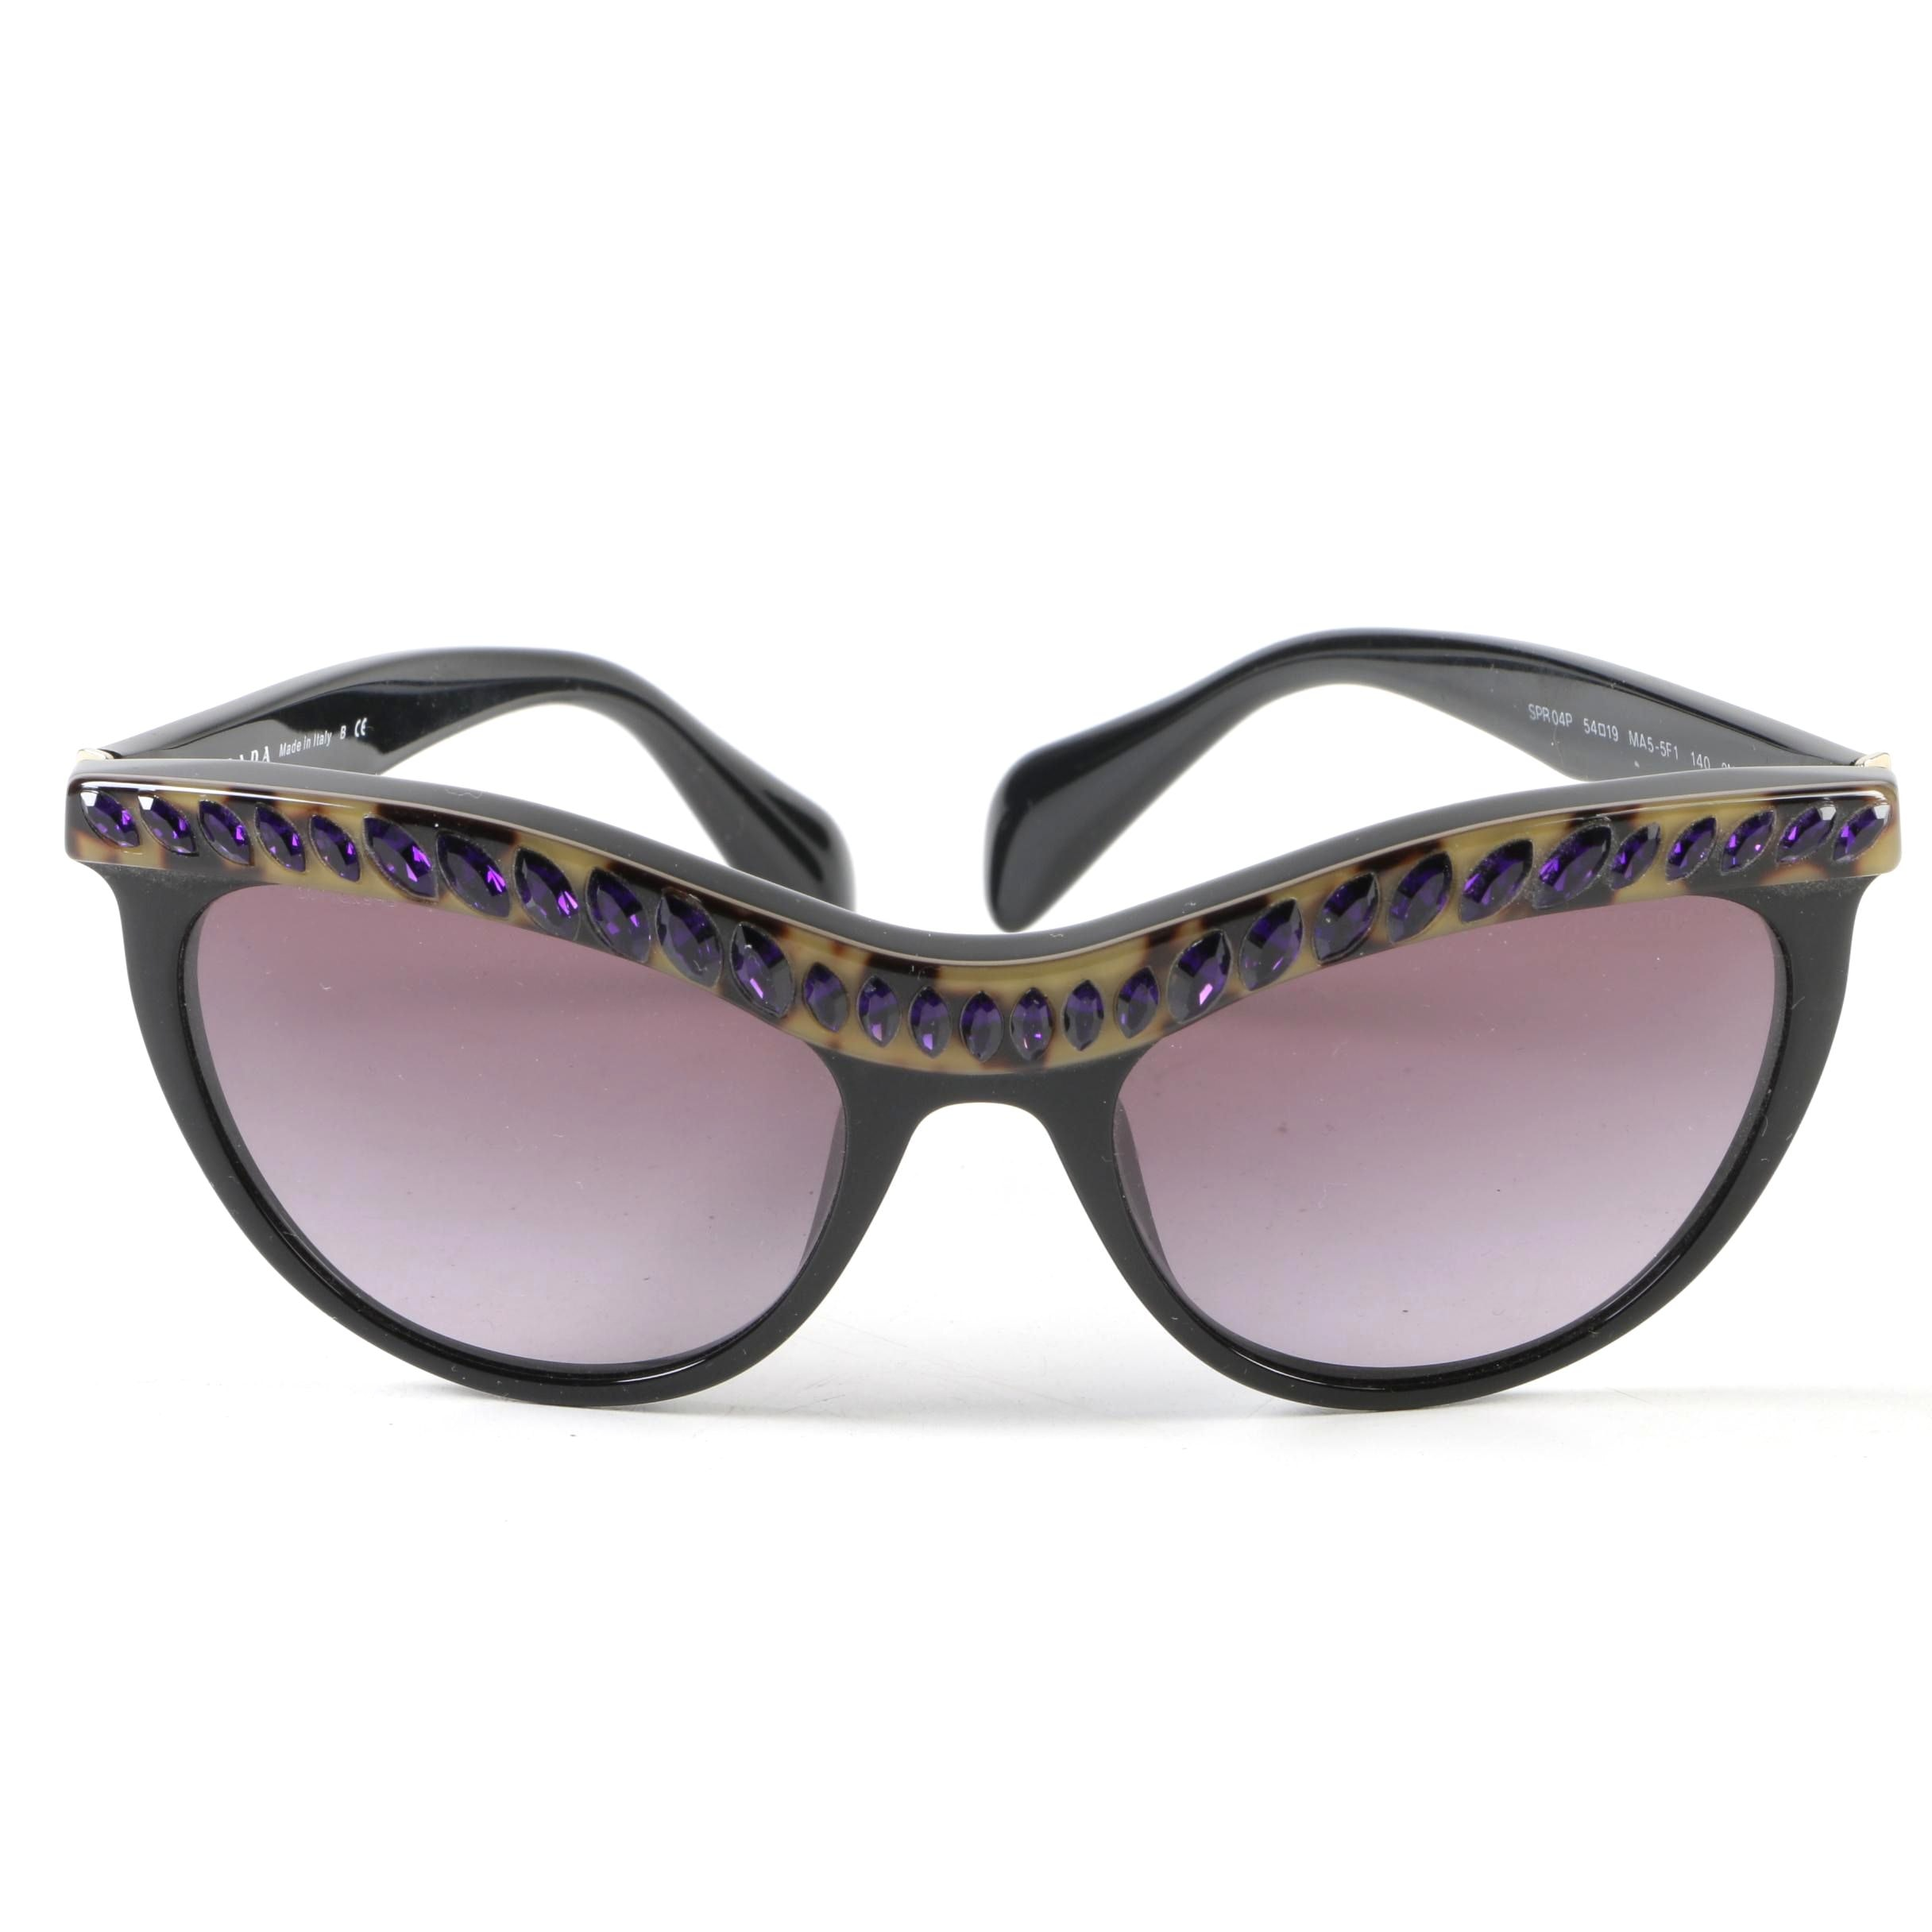 Prada SPR 04P Embellished Black Modified Cat Eye Sunglasses